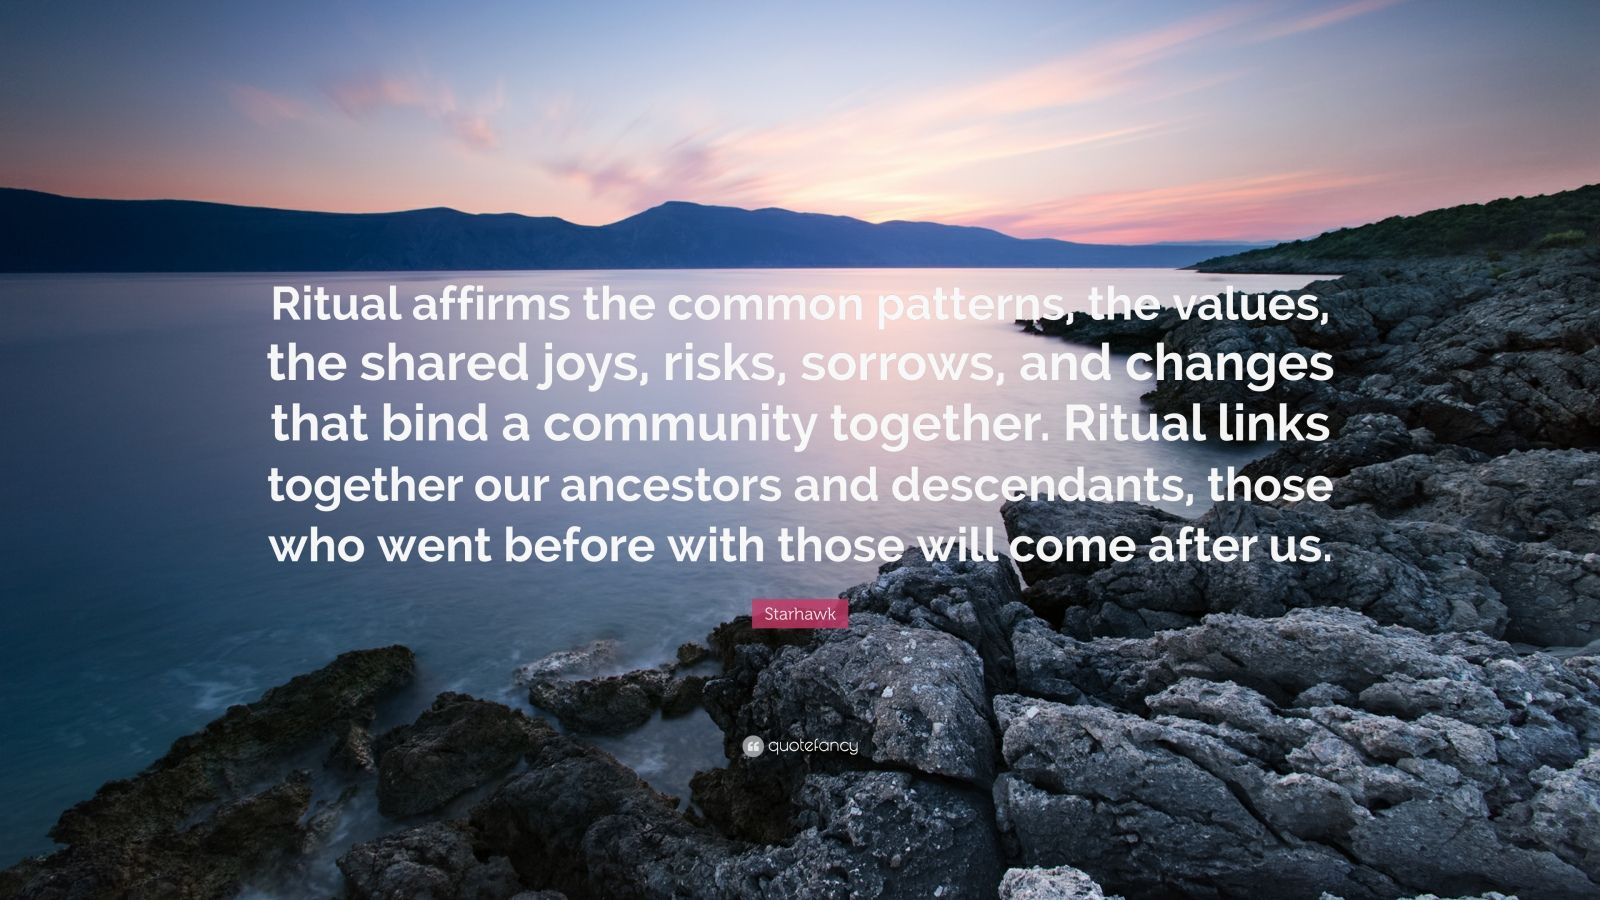 "Starhawk Quote: ""Ritual affirms the common patterns, the values, the shared joys, risks, sorrows, and changes that bind a community together. Ritual links together our ancestors and descendants, those who went before with those will come after us."""